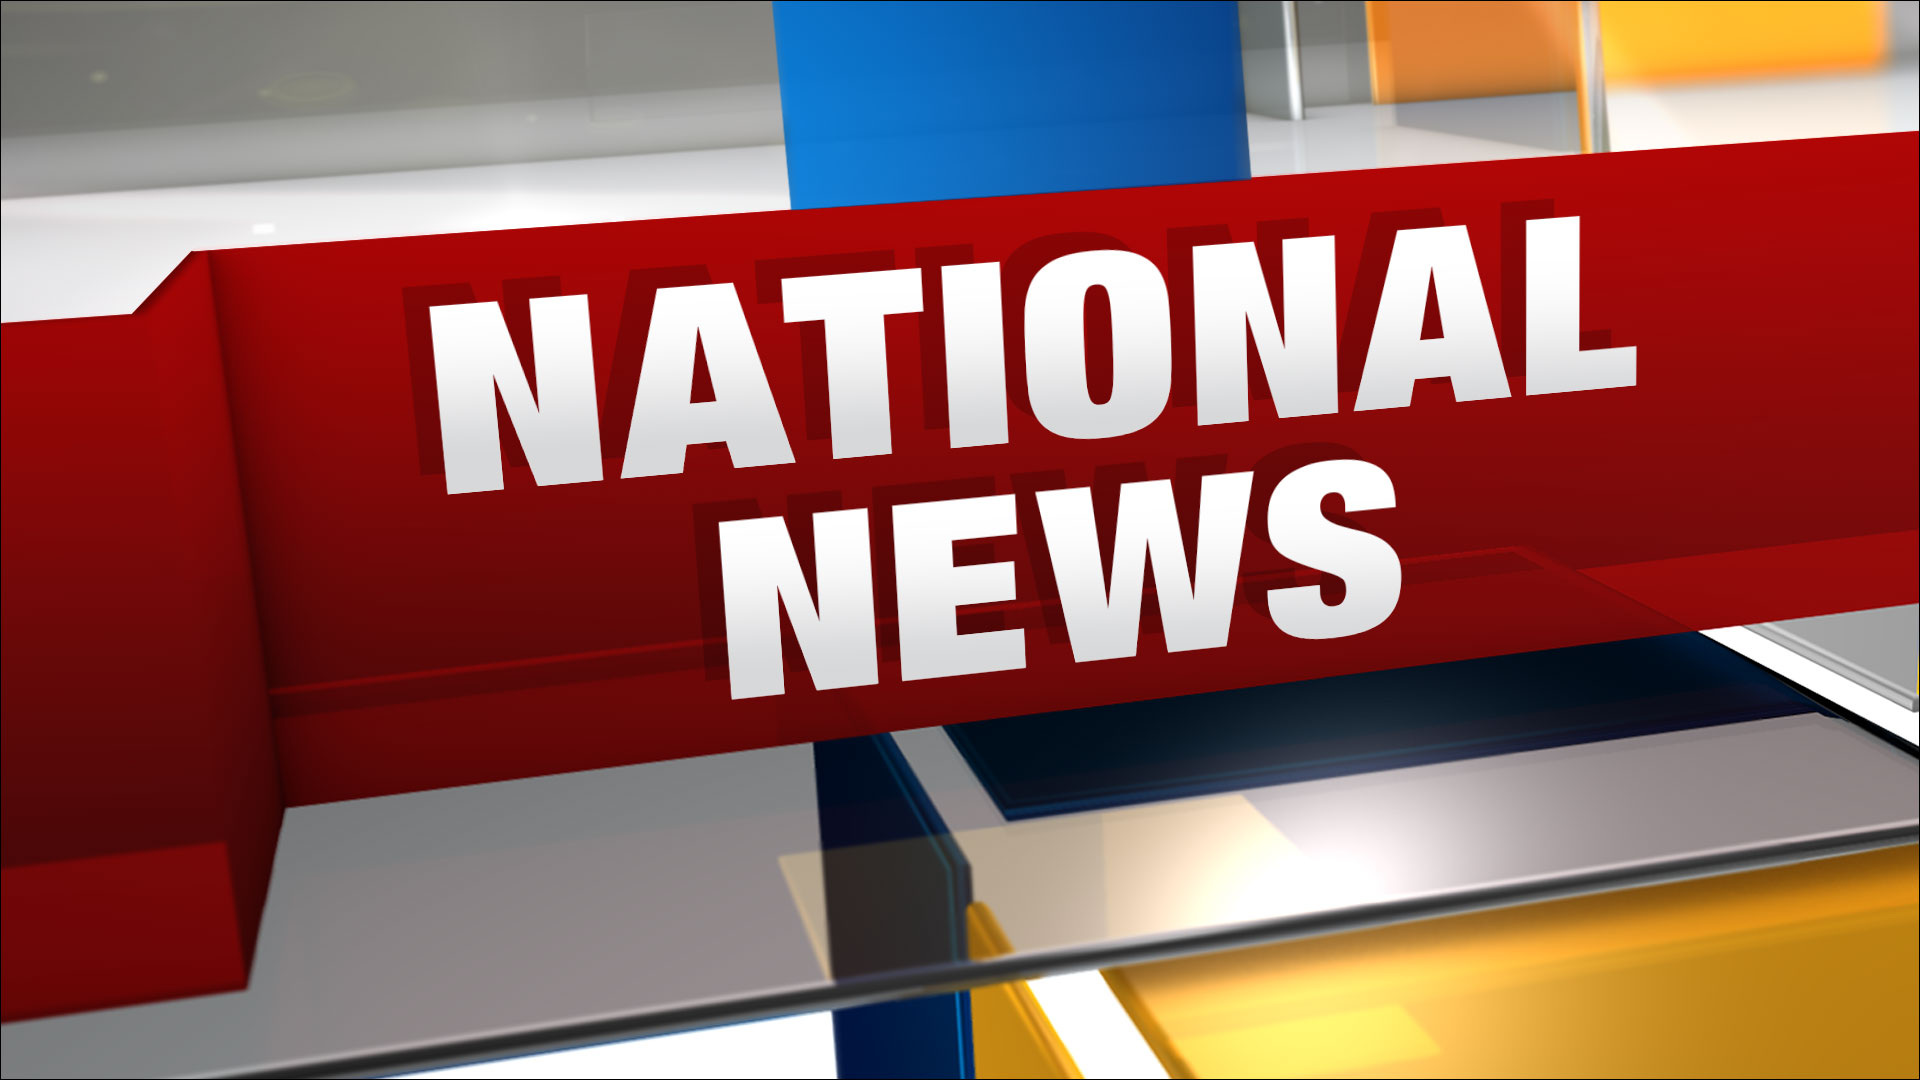 NATIONAL NEWS Generic